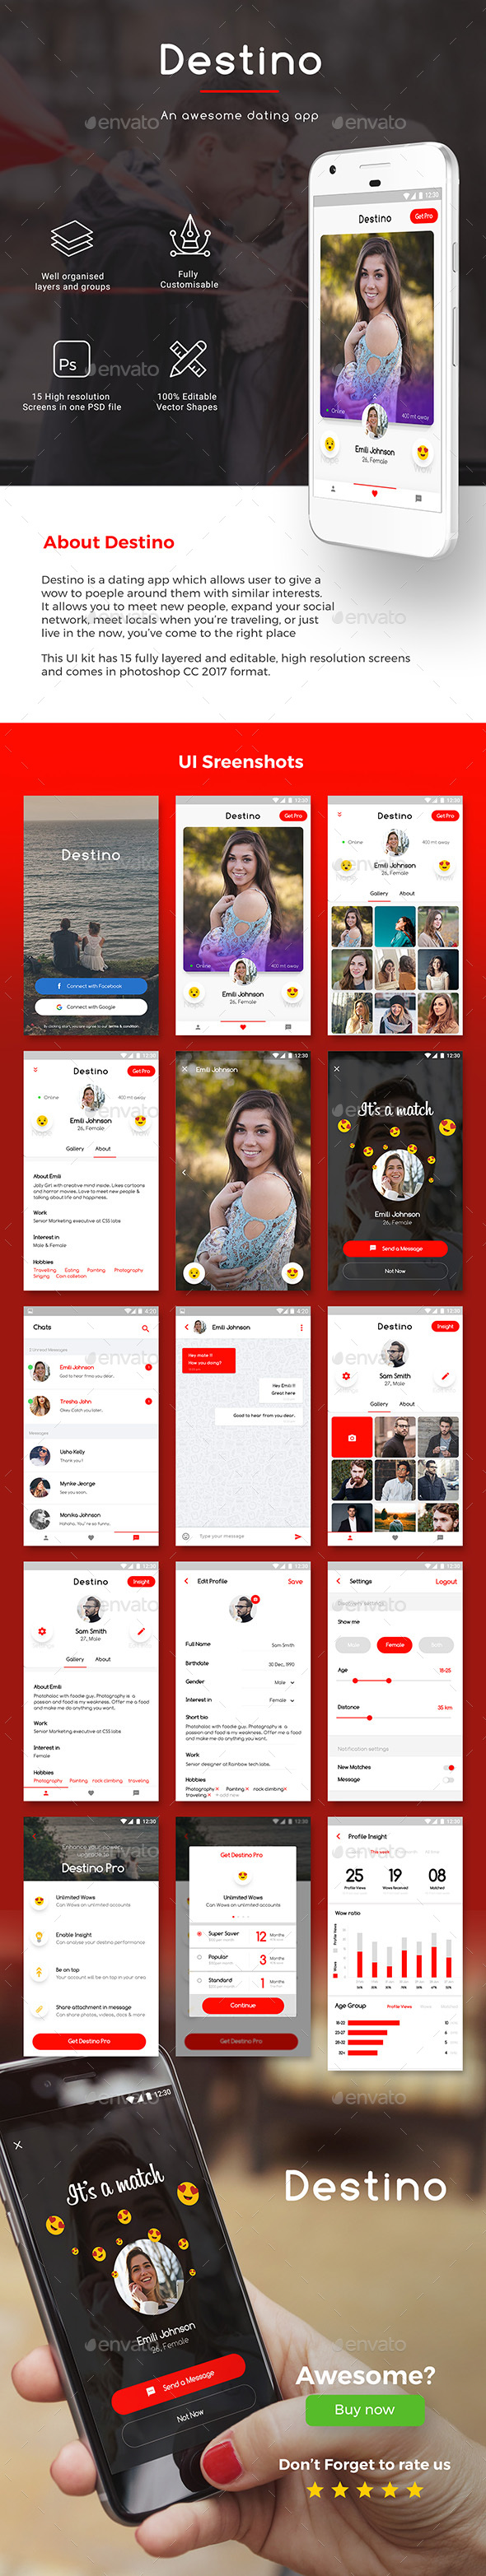 Dating App UI Set for iOS & Android | Destino - User Interfaces Web Elements